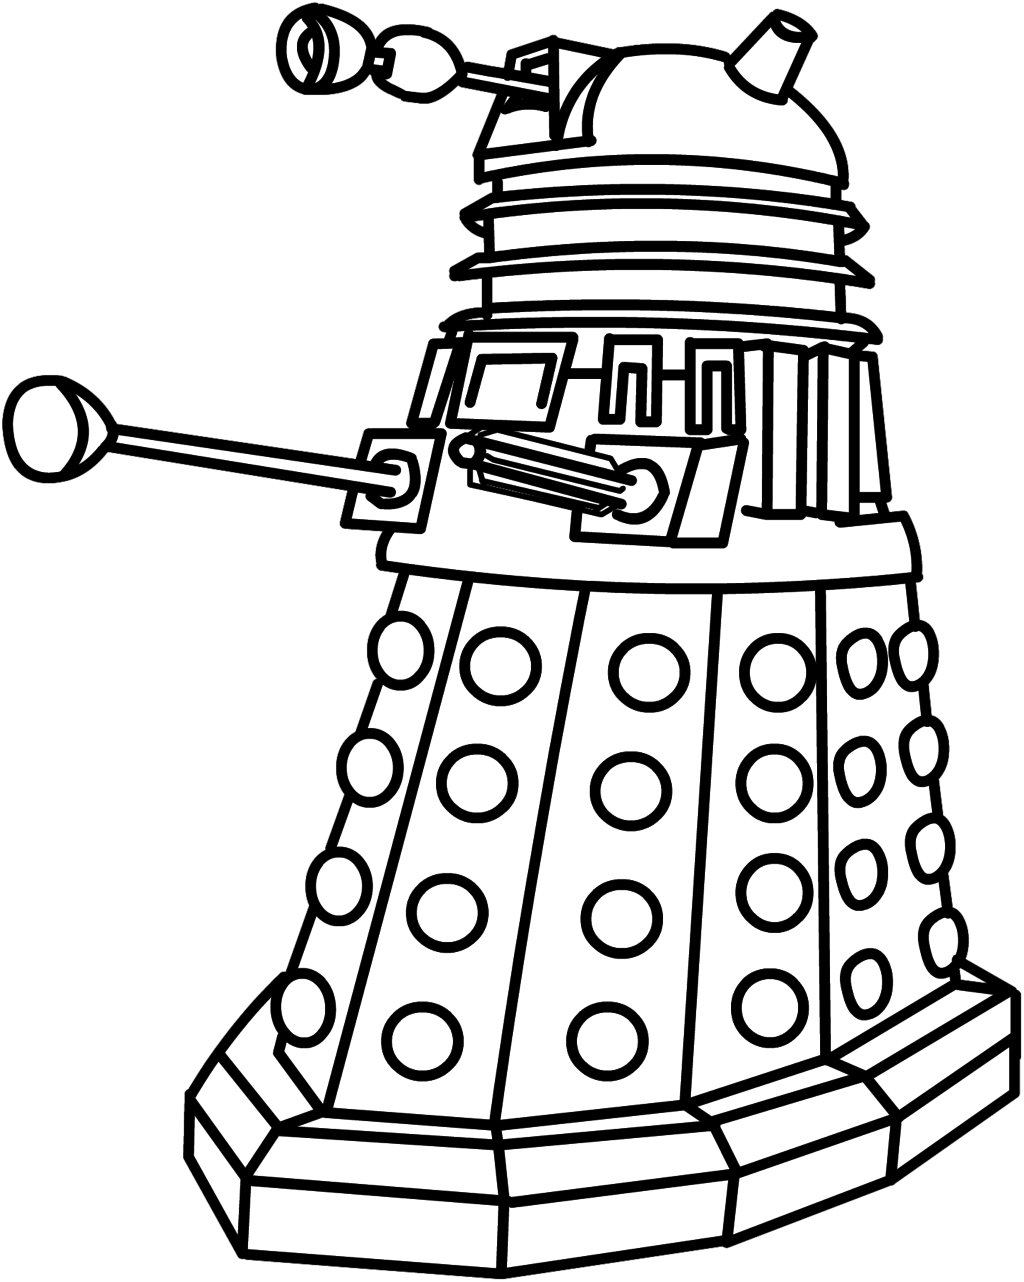 Smart drawing marine. Collection of free dalek